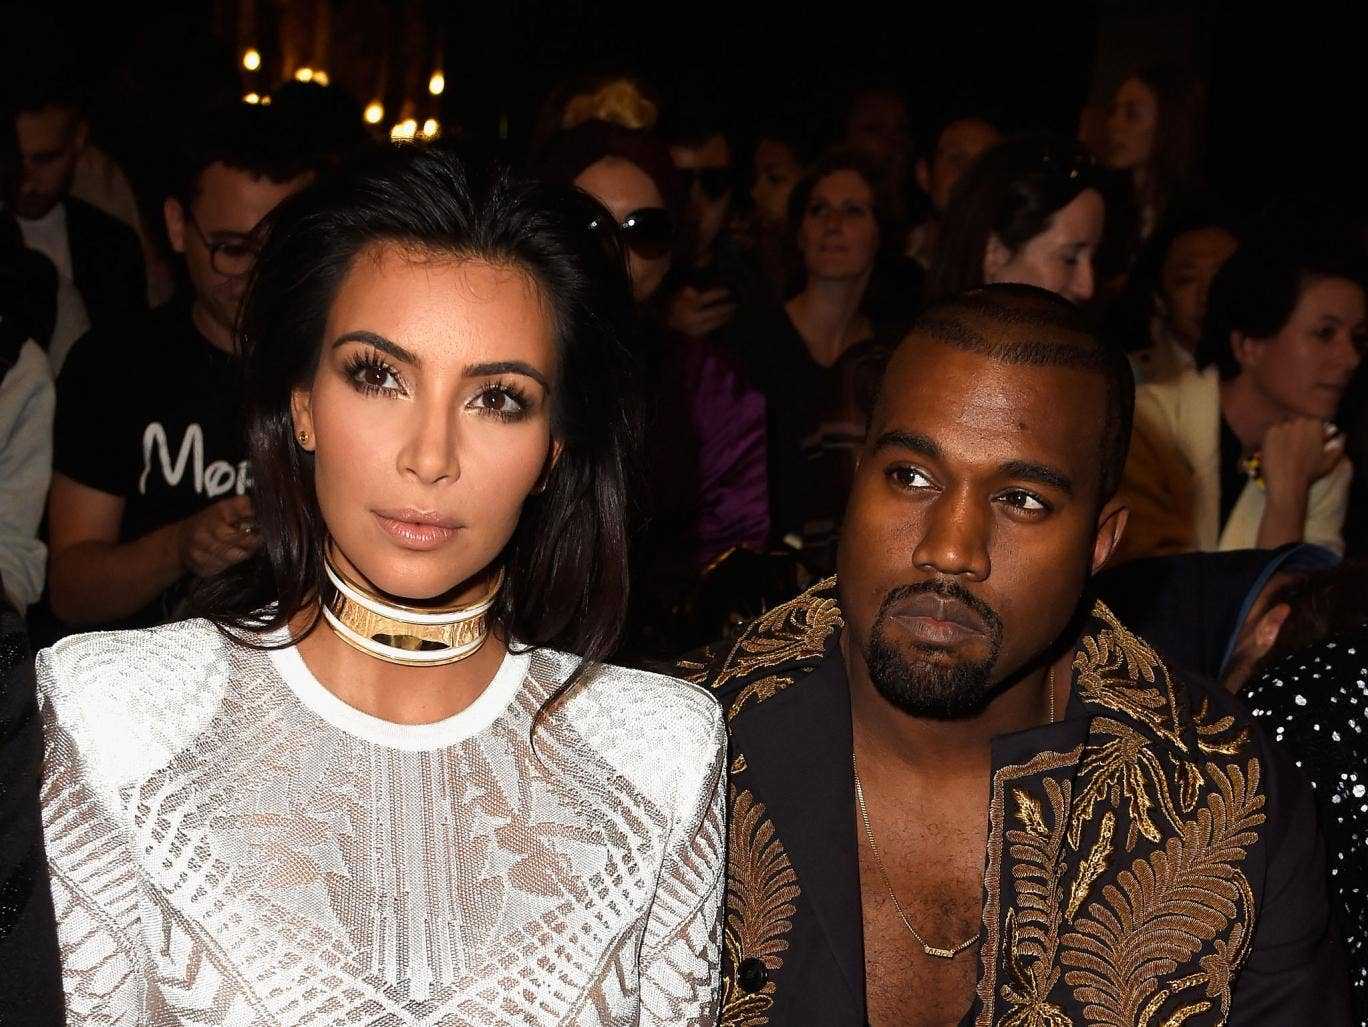 Kim Kardashian West and Kanye West on the front row of the Balmain fashion show in Paris, September 2014